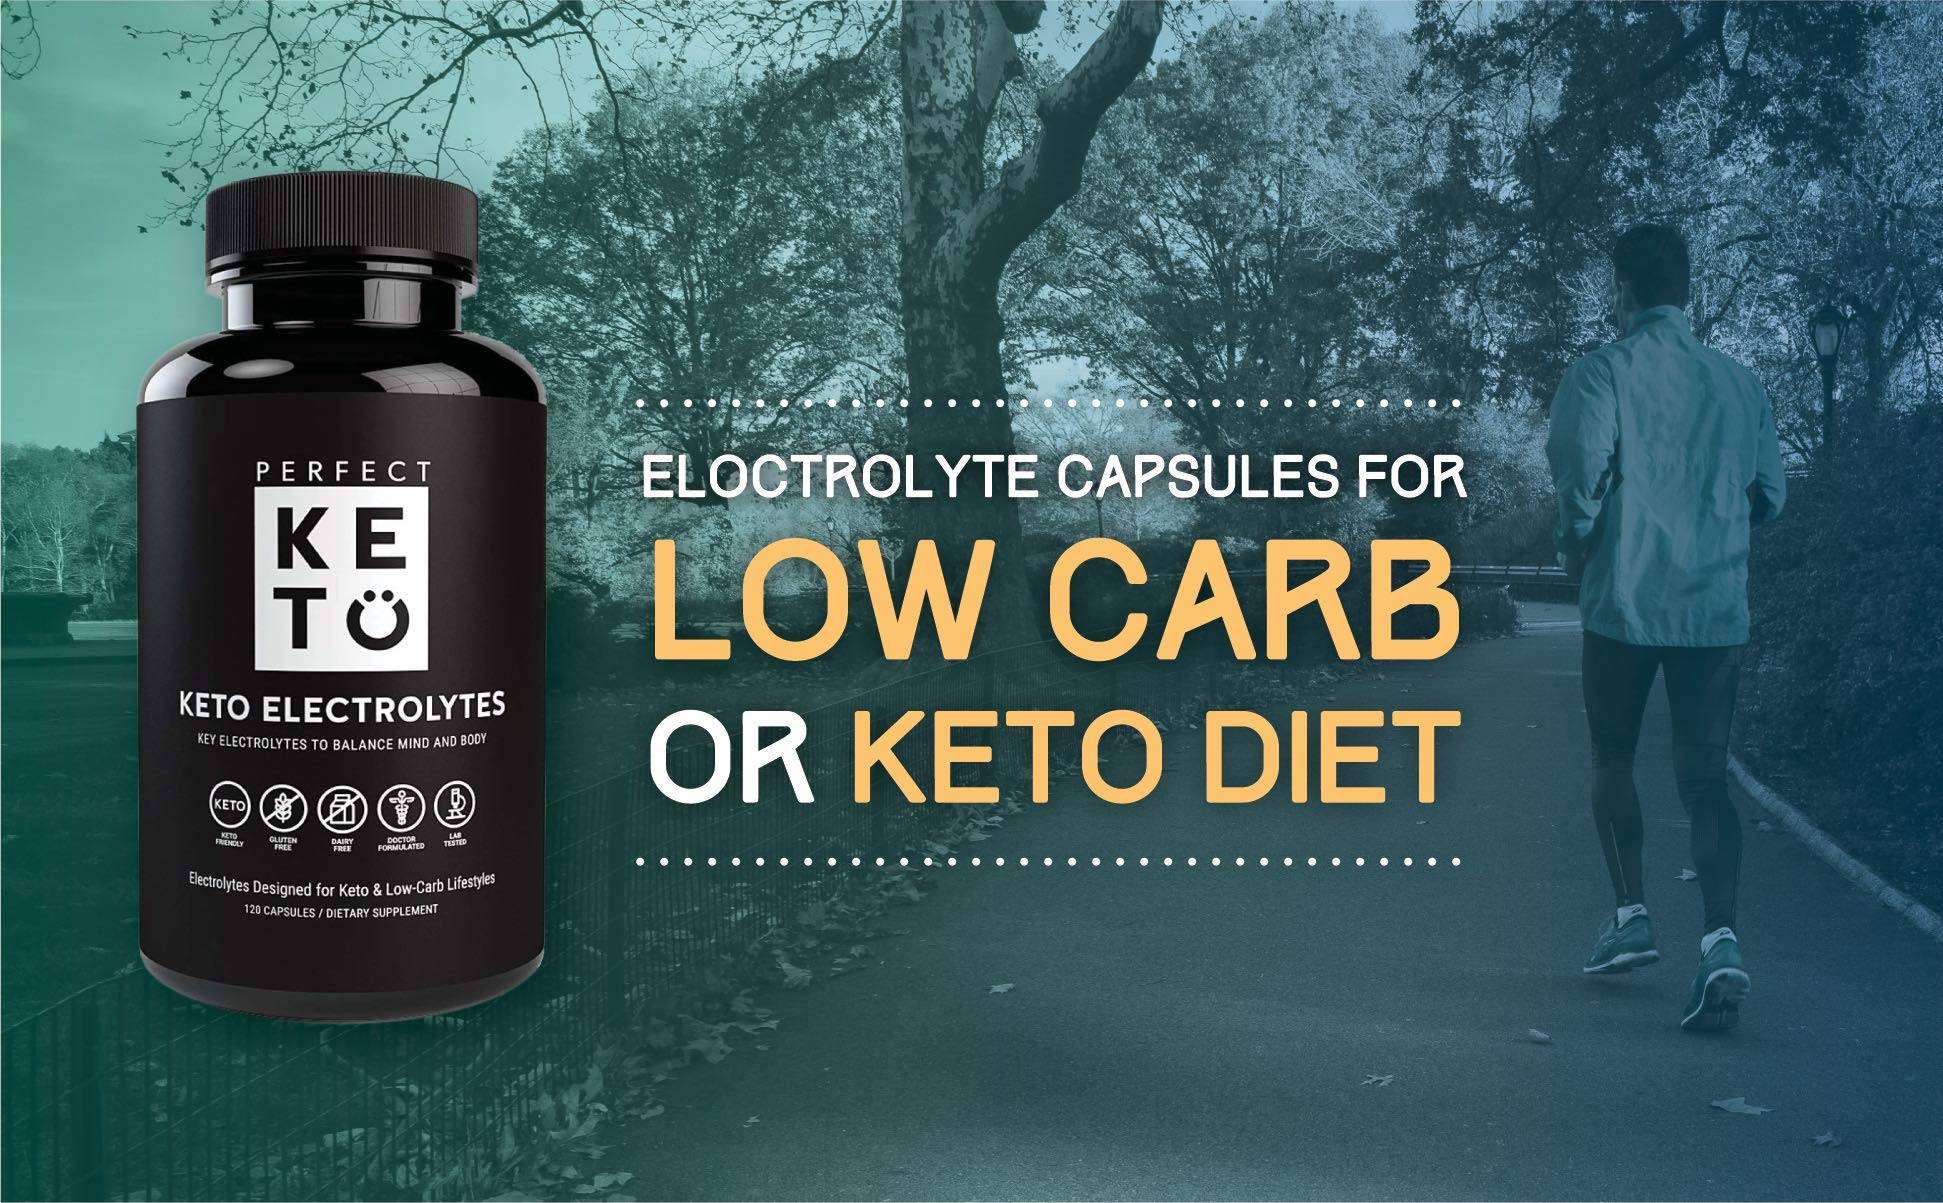 Perfect Keto Flu Electrolyte Supplement: Electrolytes Capsules for Low Carb Diet or Ketogenic Diet to Balance Mind & Body. Energy Supplements, Sodium, Potassium, Magnesium (1 Bottle, 120 Count) by Perfect Keto (Image #5)